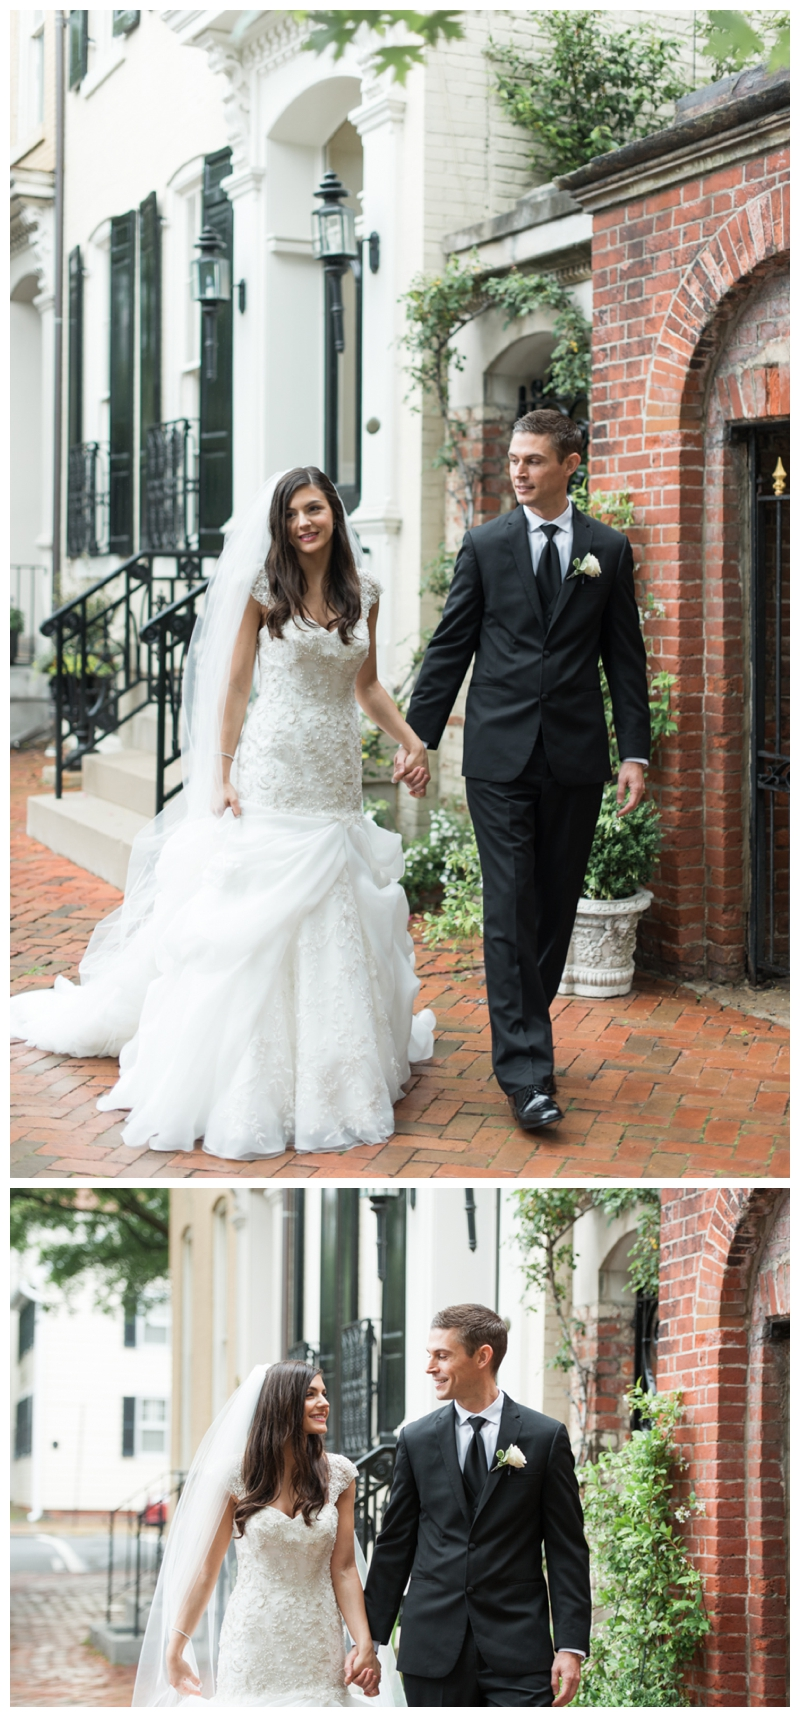 Wedding at Rose Hill Manor in Leesburg Virginia by Rachael Foster Photography_0148.jpg